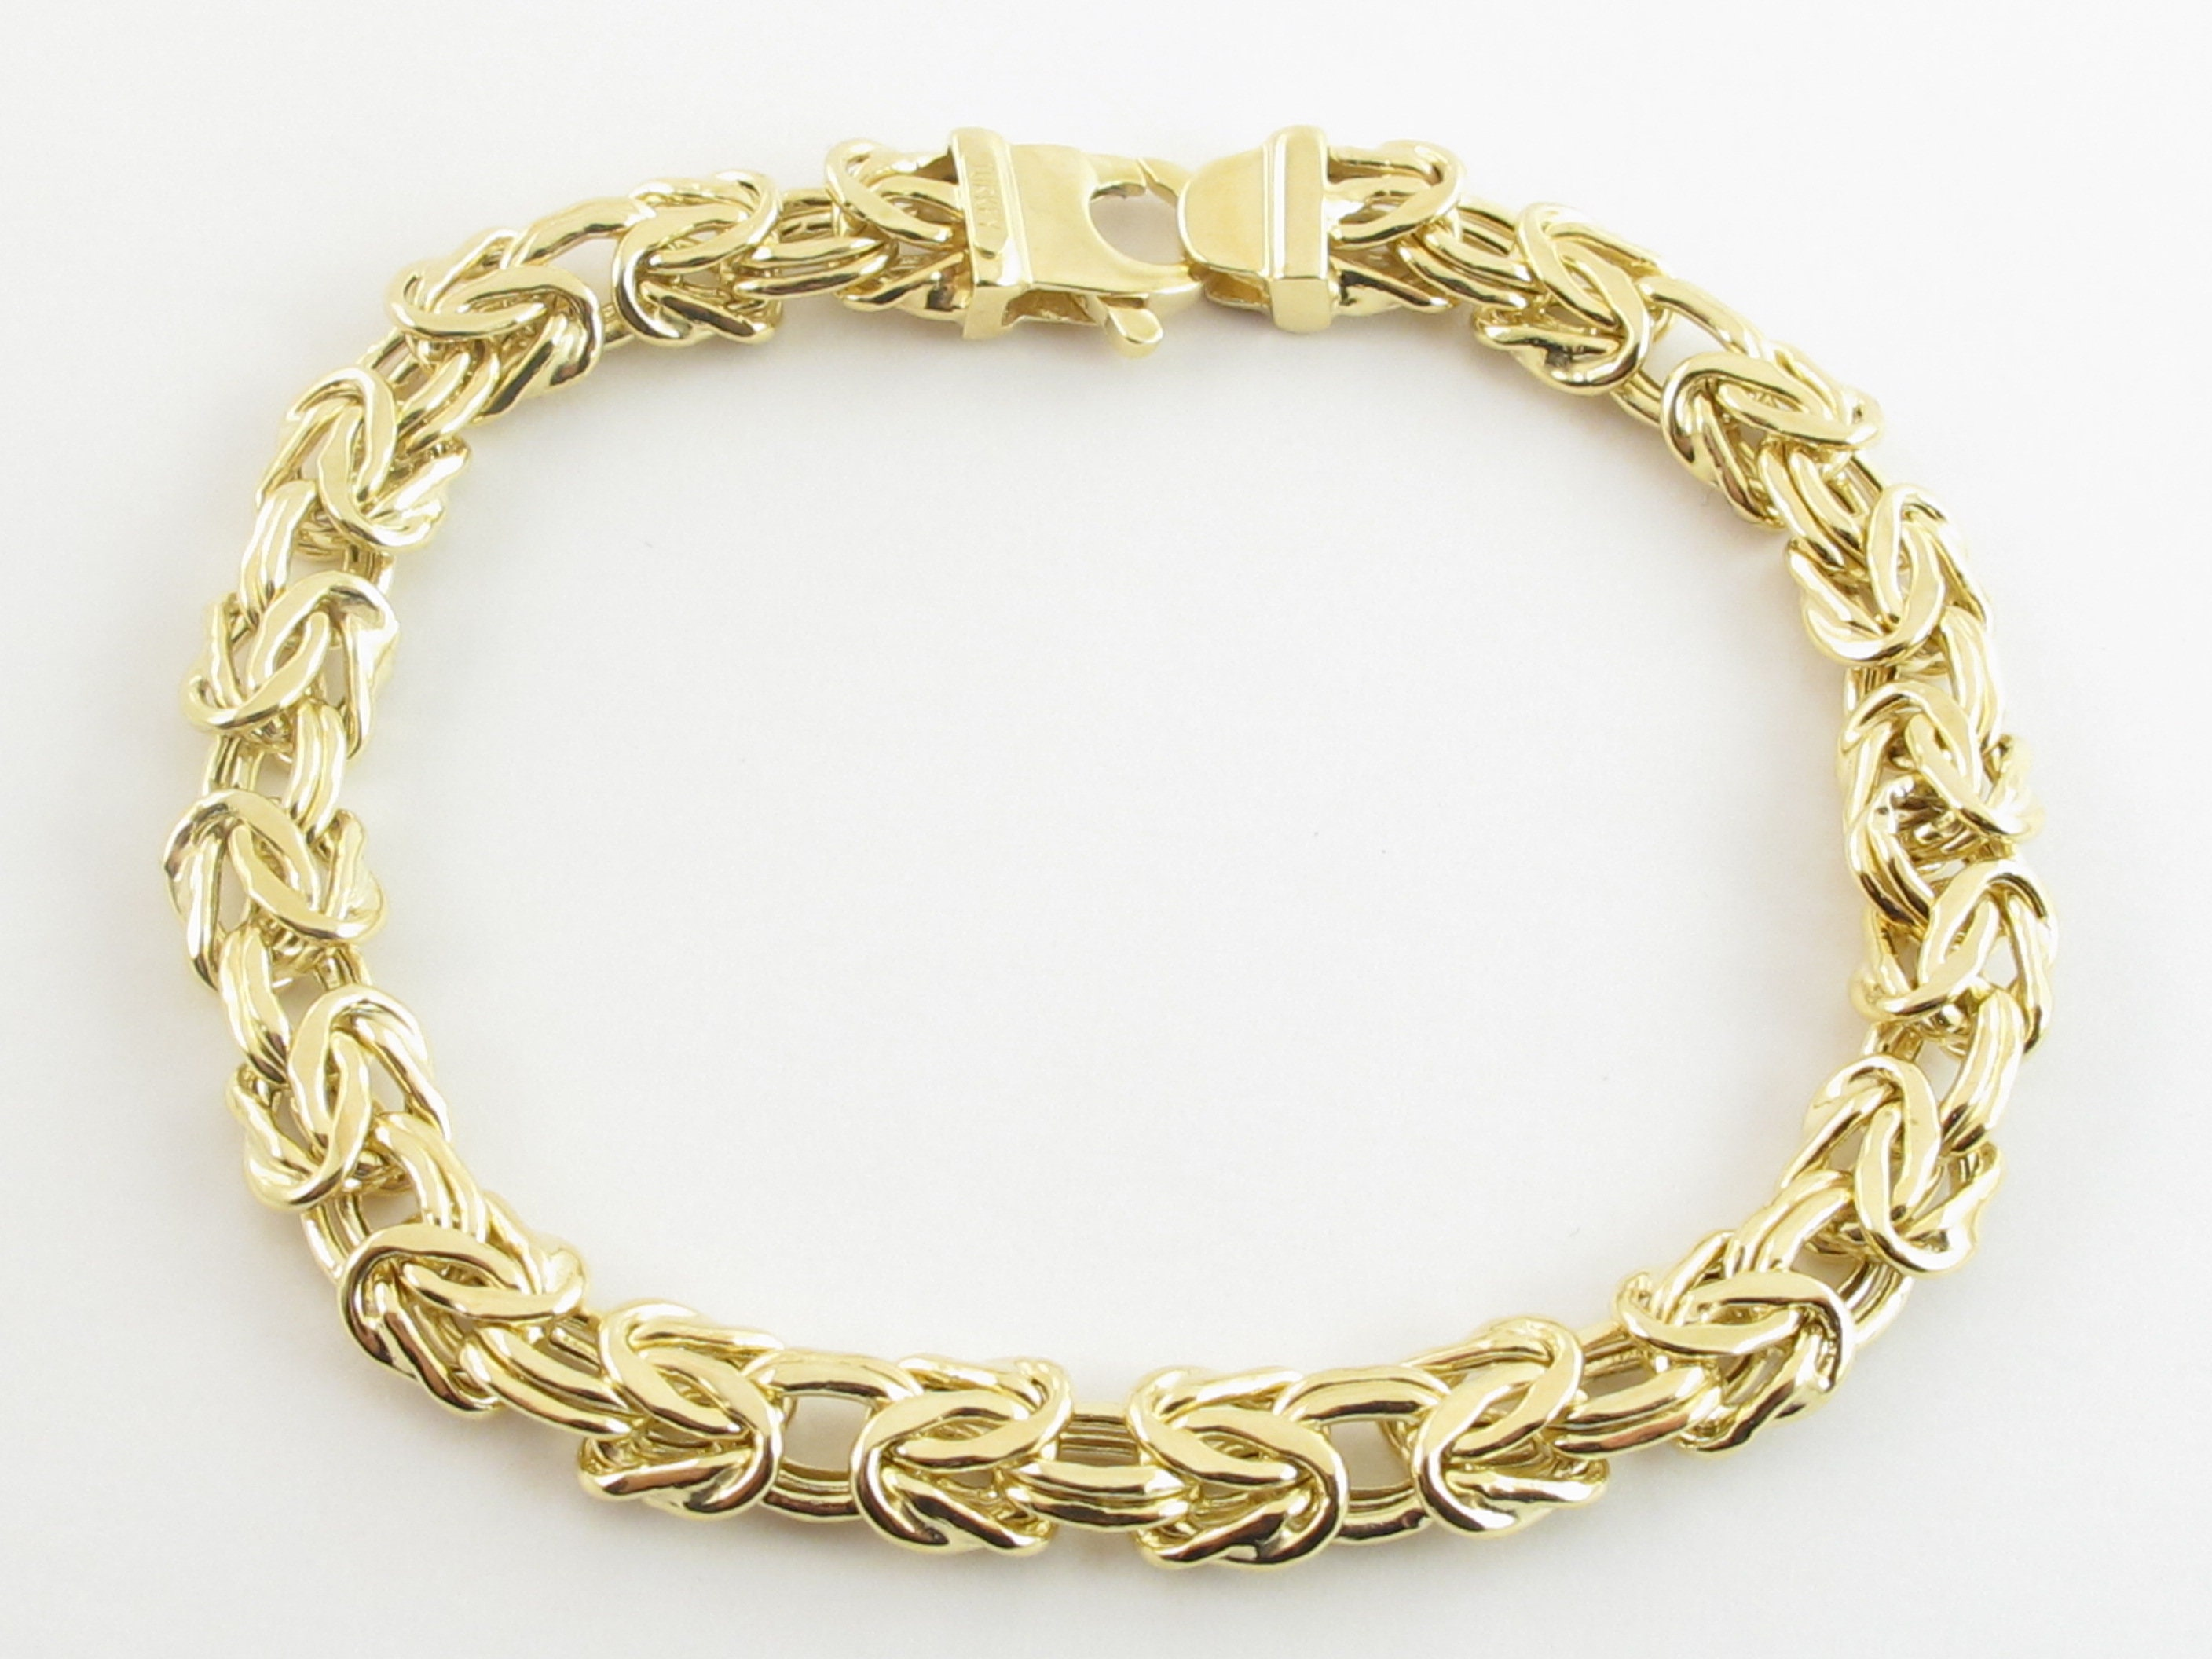 221k Yellow Gold Byzantine Bracelet Available In 221 21/21